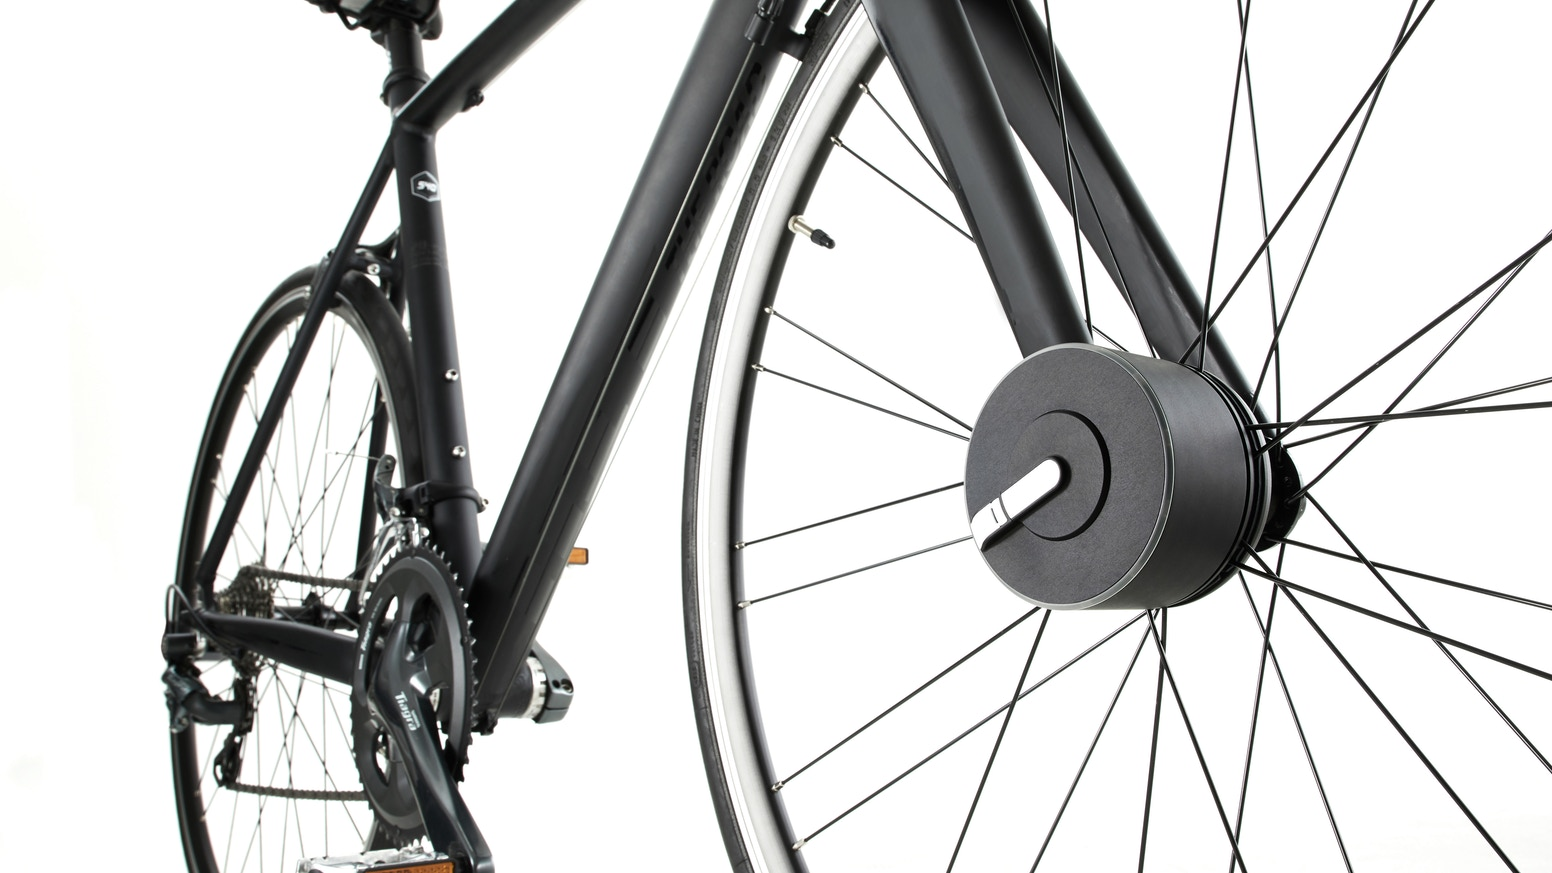 Bisecu reinvents smart bike lock. It's the first fully automated smart bike lock with riding data analysis.